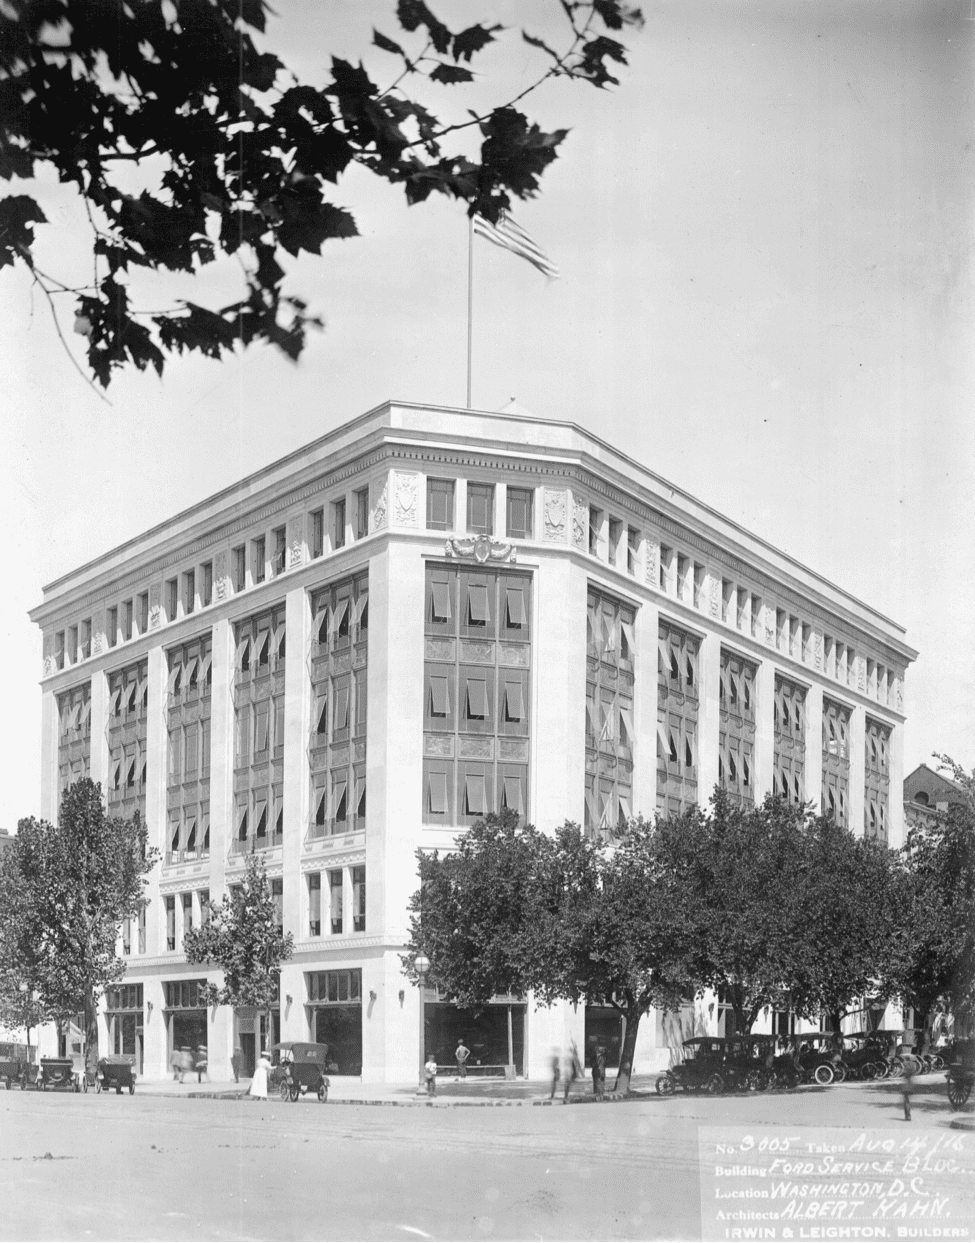 Ford's Washington branch building